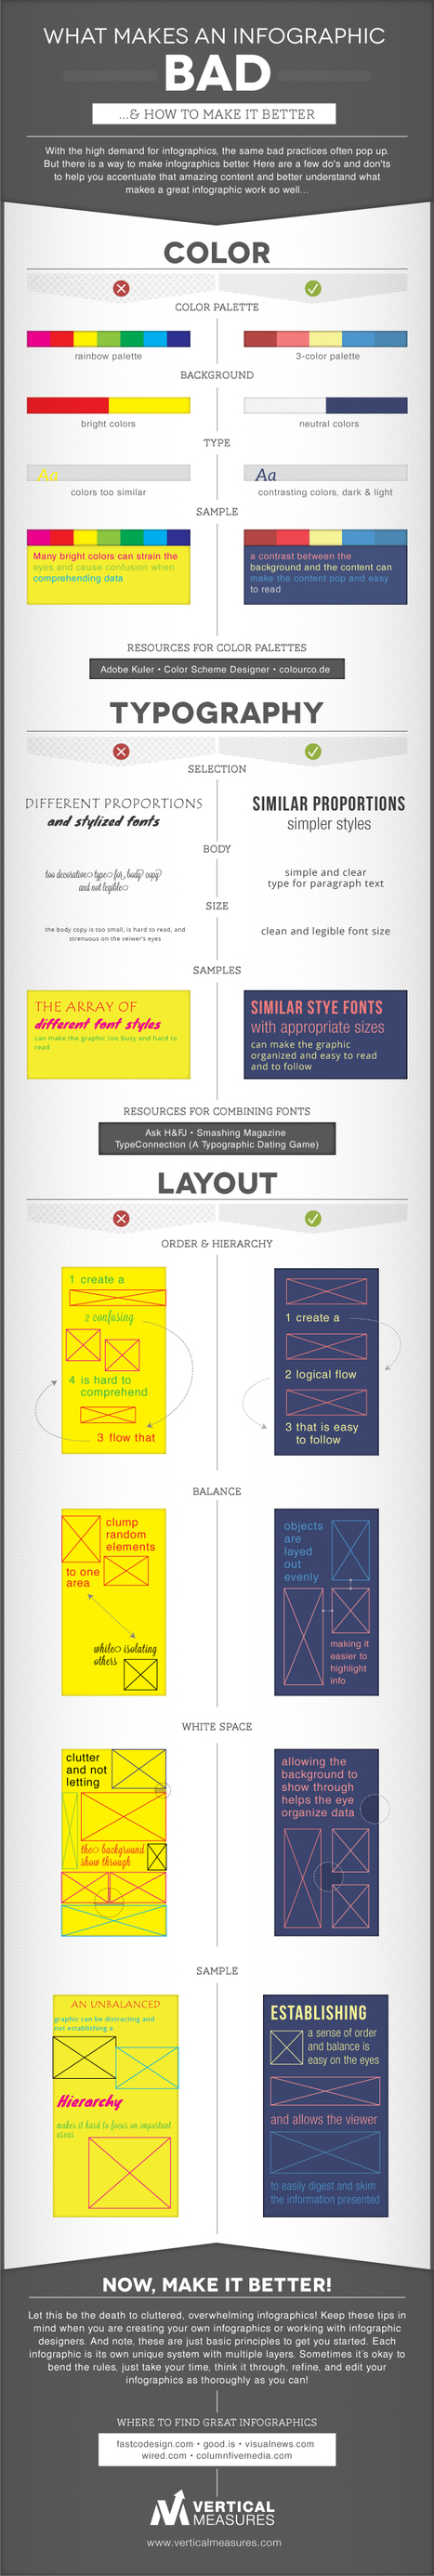 What Makes an Infographic Bad & How To Make It Better by Vertical Measures | #TheMarketingAutomationAlert | Graphic Design | Scoop.it